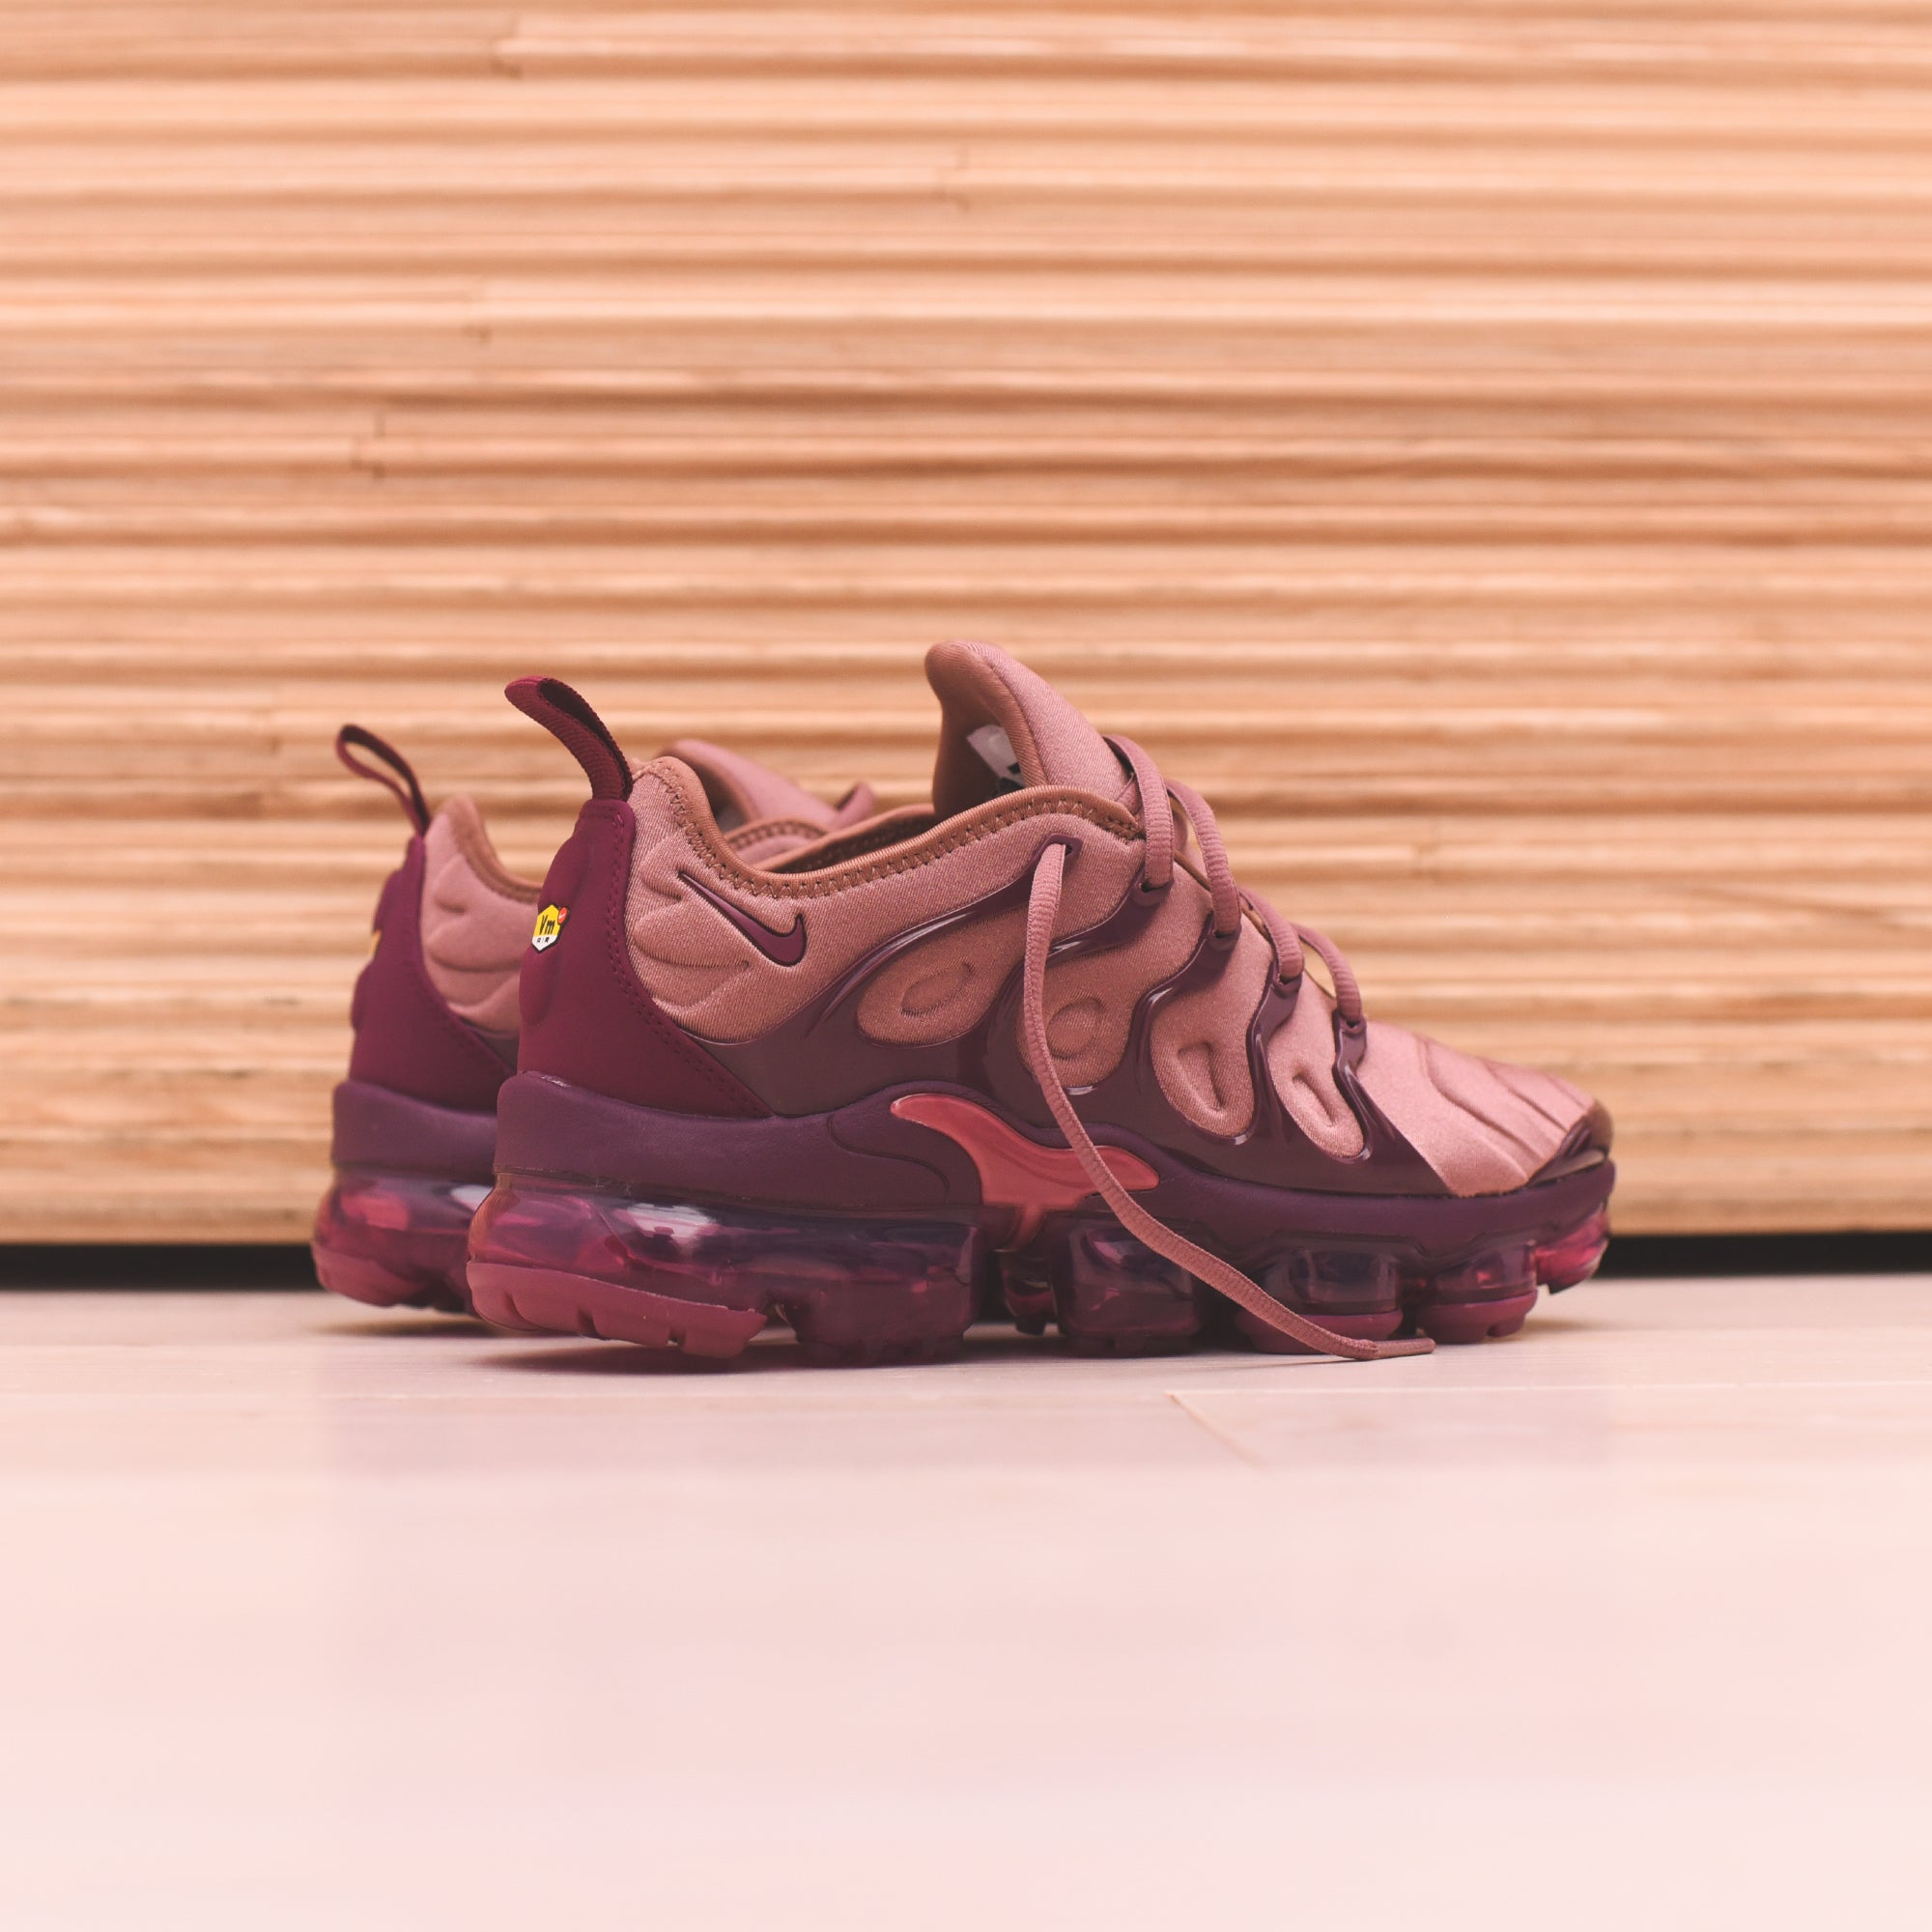 uk availability 8c843 48fc5 Nike WMNS Air VaporMax Plus - Mauve / Black – Kith